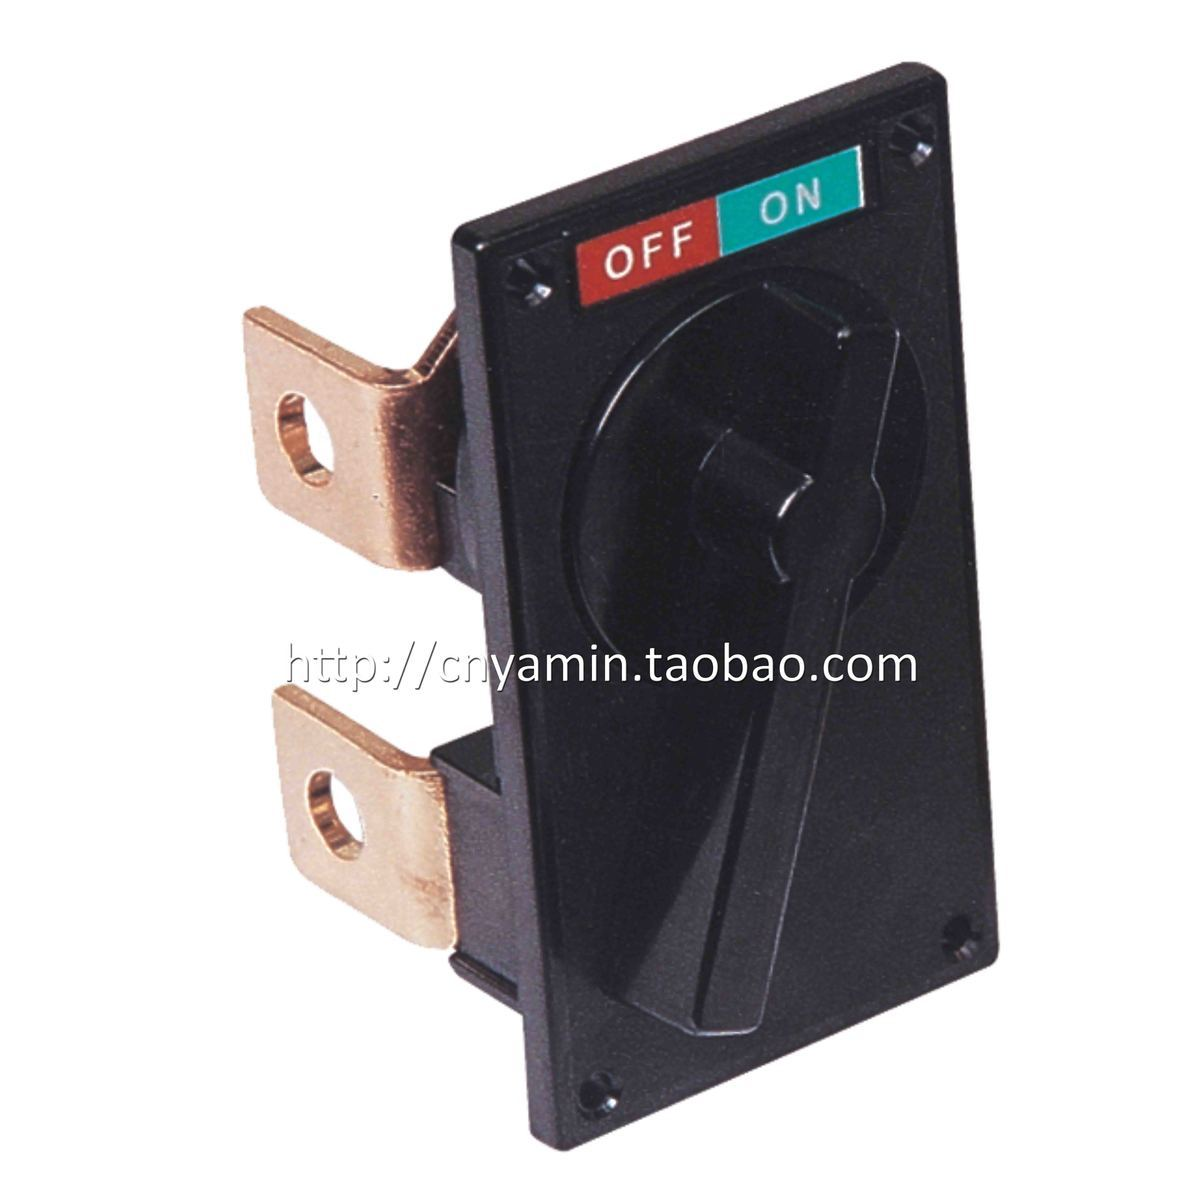 KDHS - 125/1 BX1 Through To Break Off Close Welding Machine Switch Welding Machine Parts Knife Single Pole Switch 125A